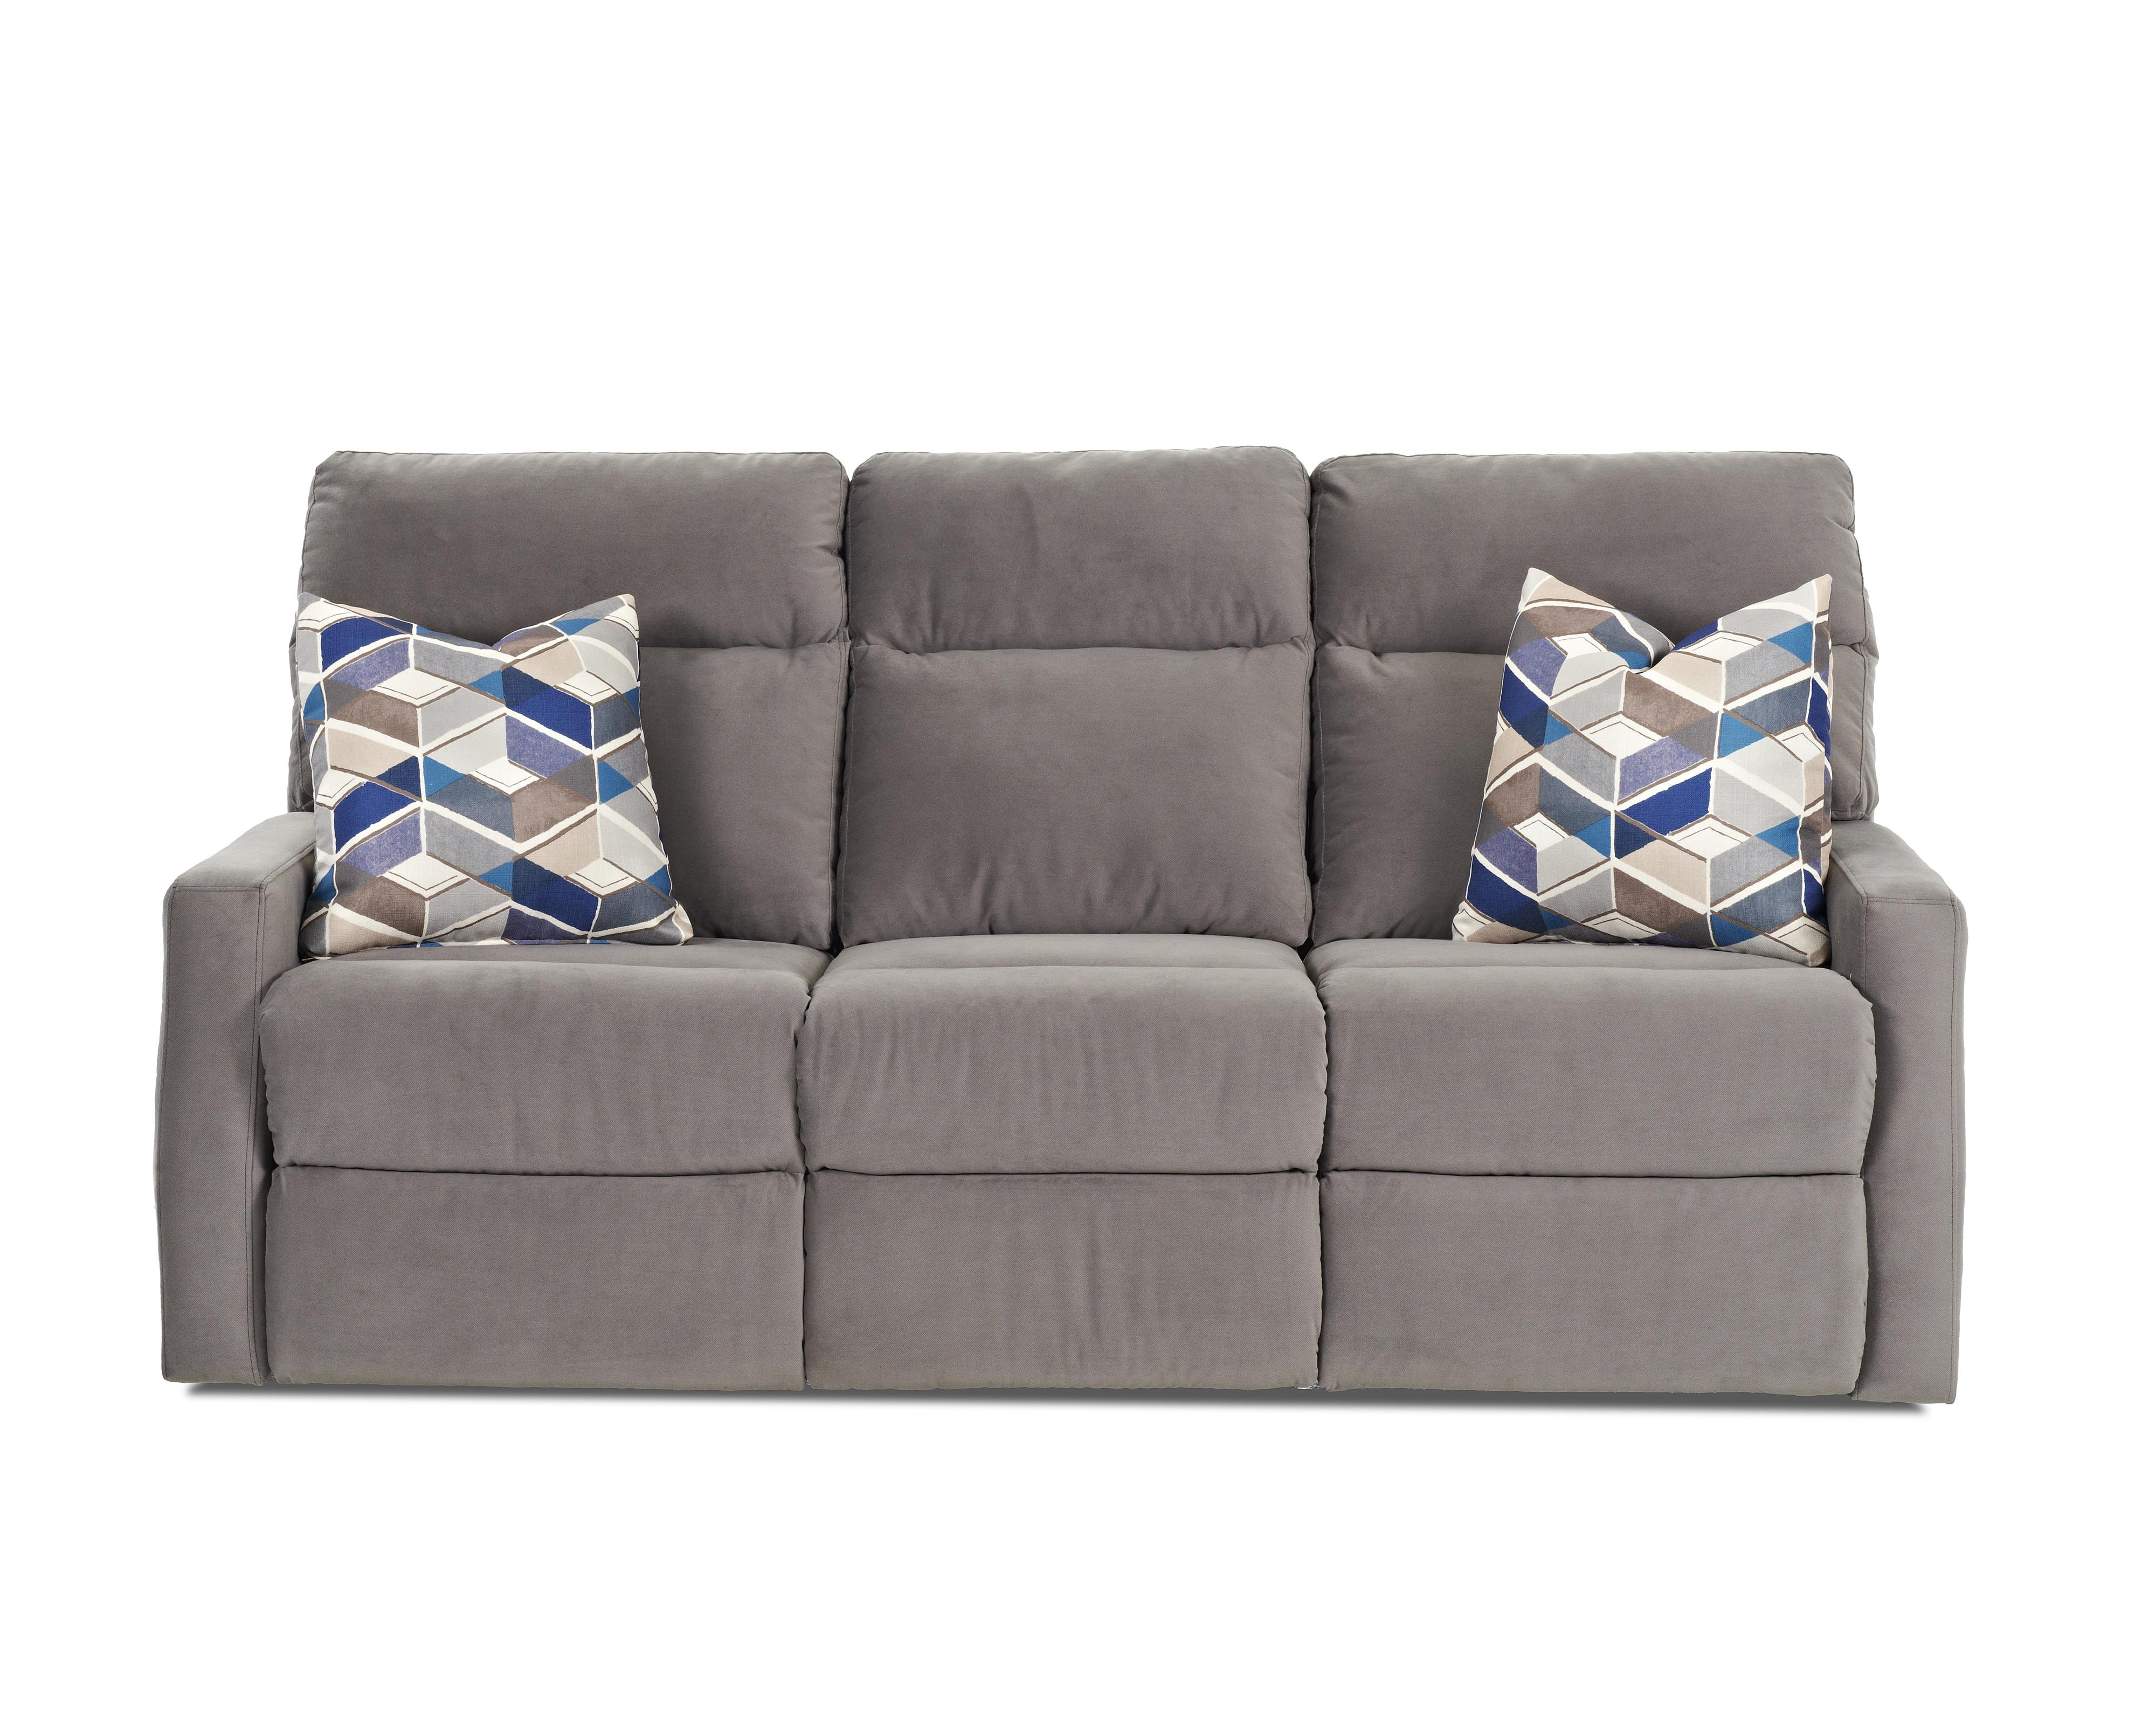 Daphne Reclining Sofa w/ Pillows by Klaussner at Catalog Outlet